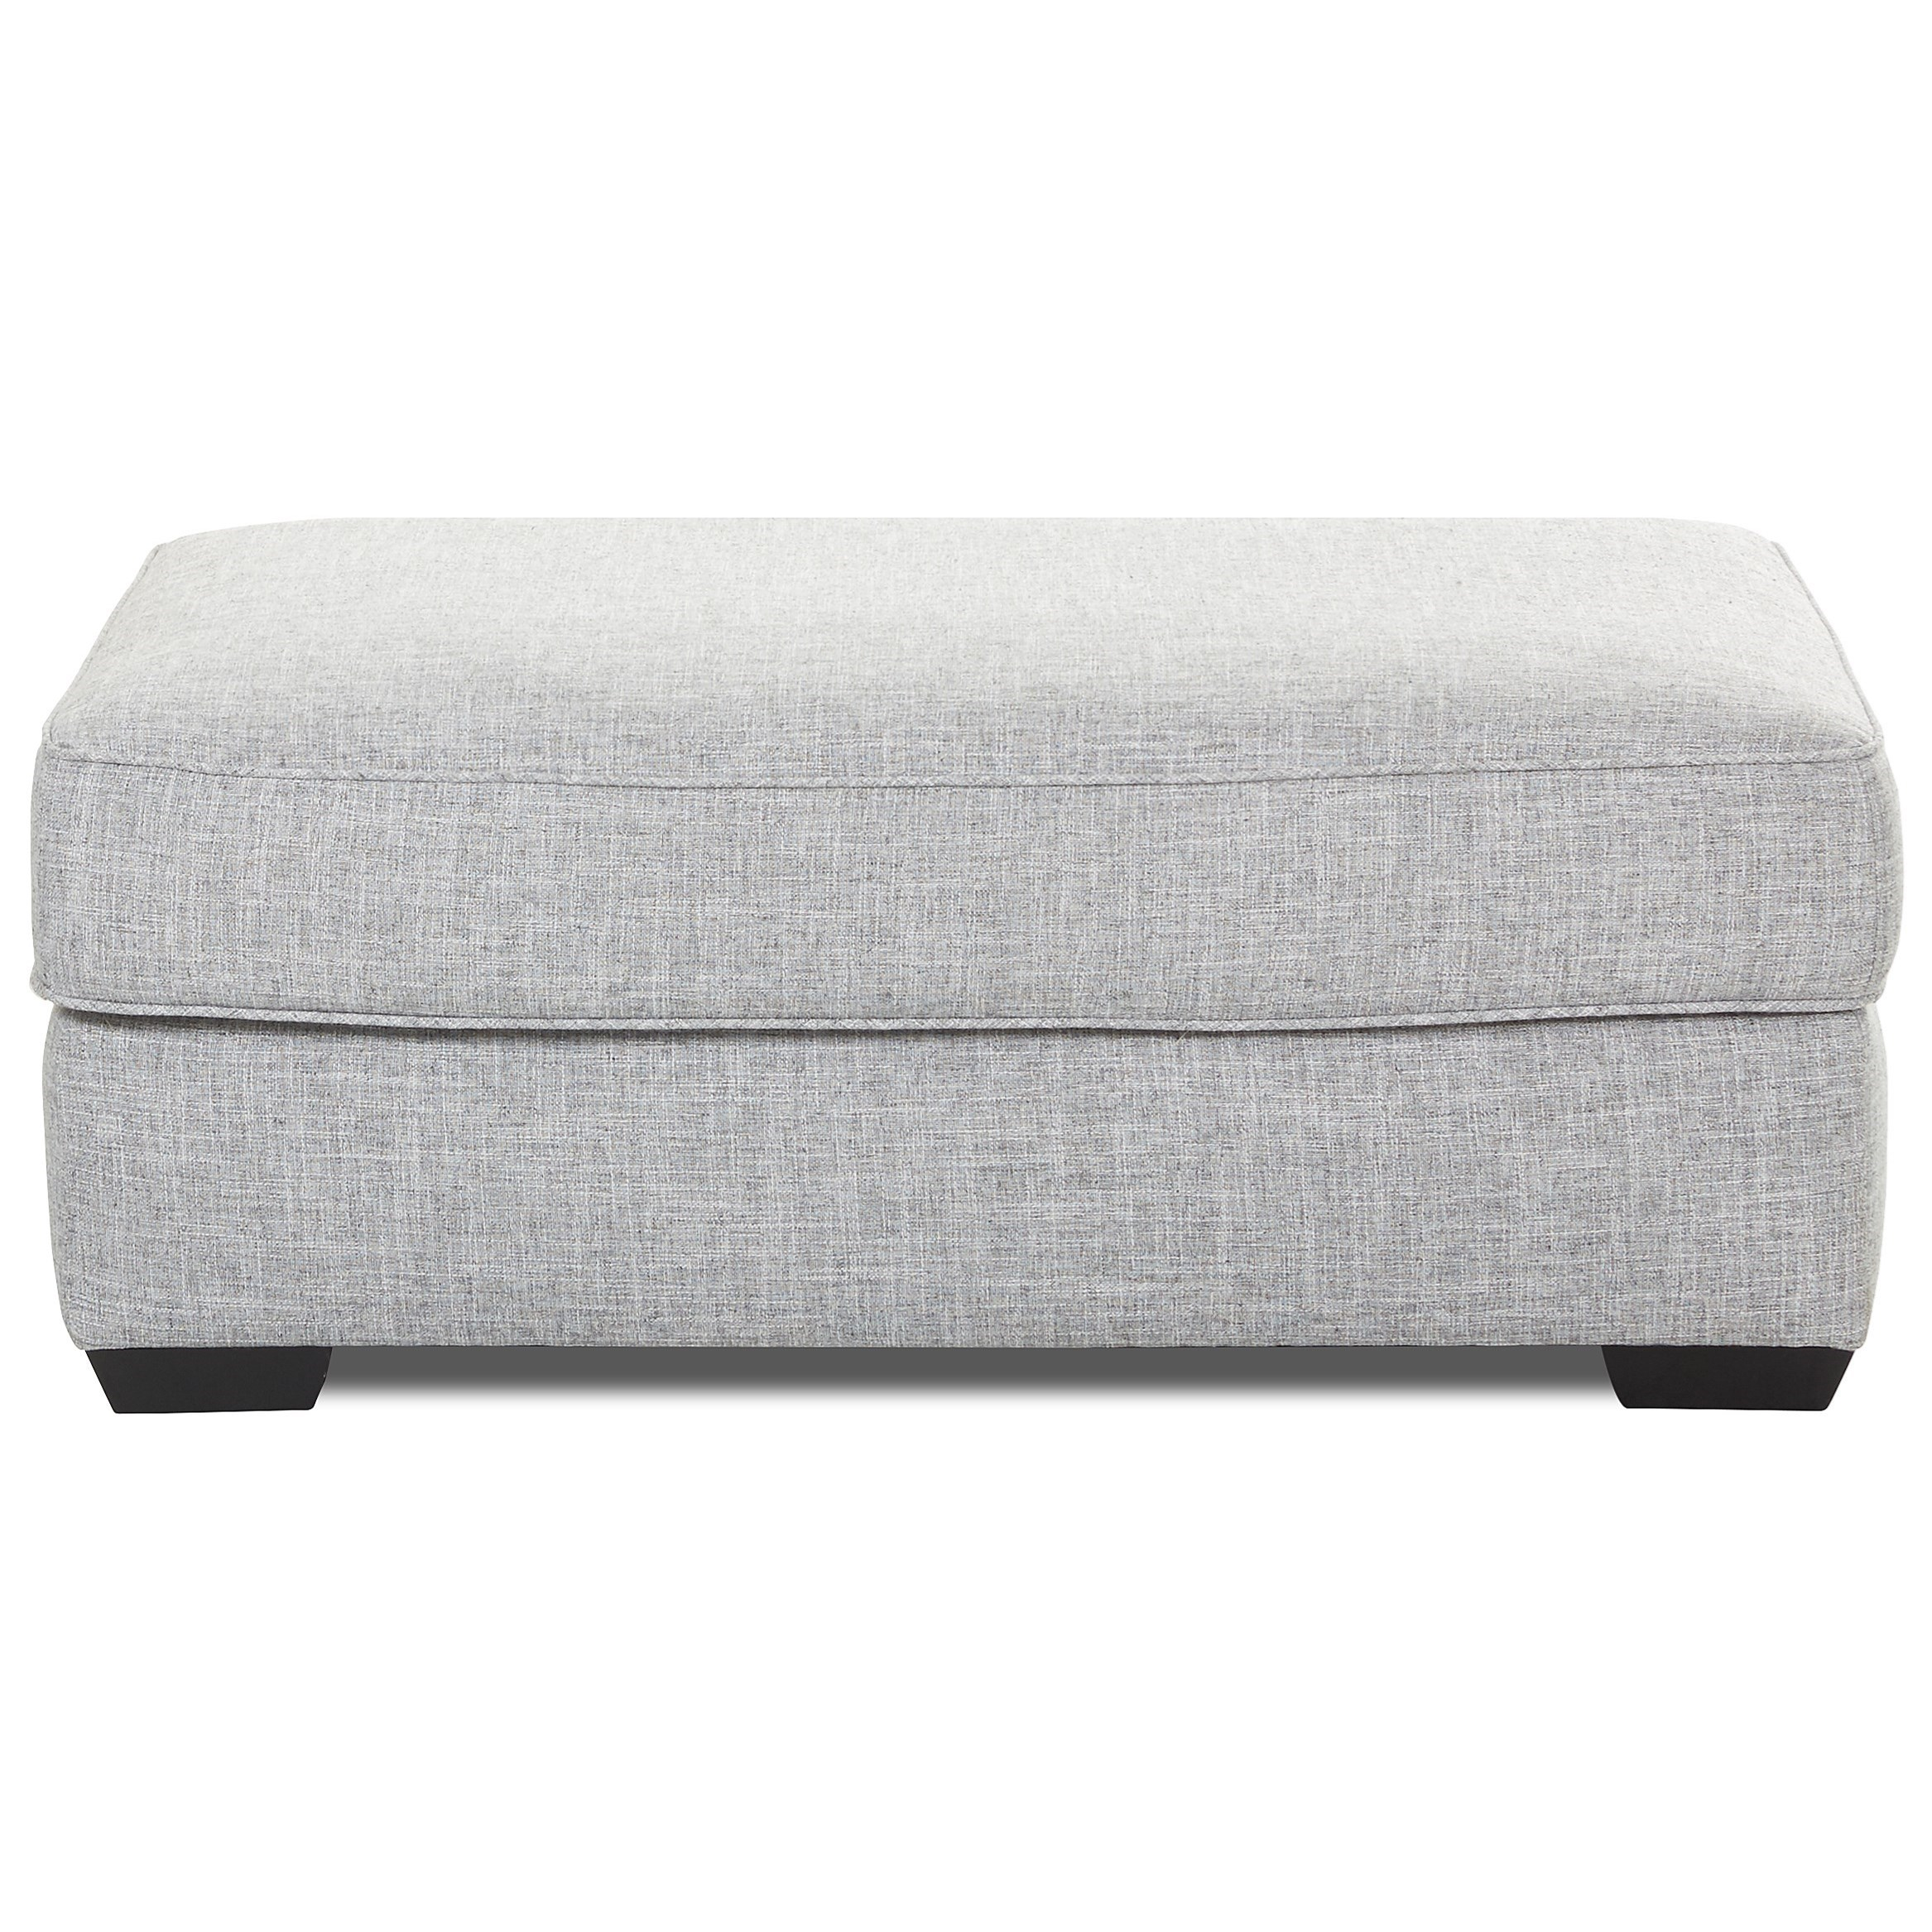 Klaussner Kearns Contemporary Ottoman With Down Blend